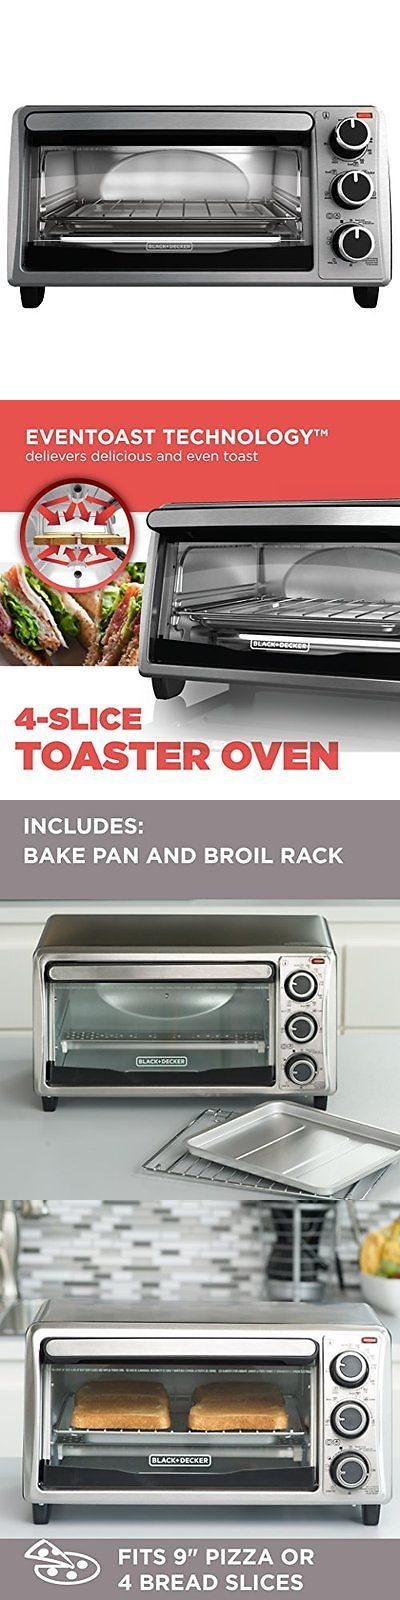 Toaster Ovens 122930: 4-Slice Toaster Oven Electric Countertop Toast Bake Broil Pizza Cook Kitchen New -> BUY IT NOW ONLY: $30.08 on eBay!